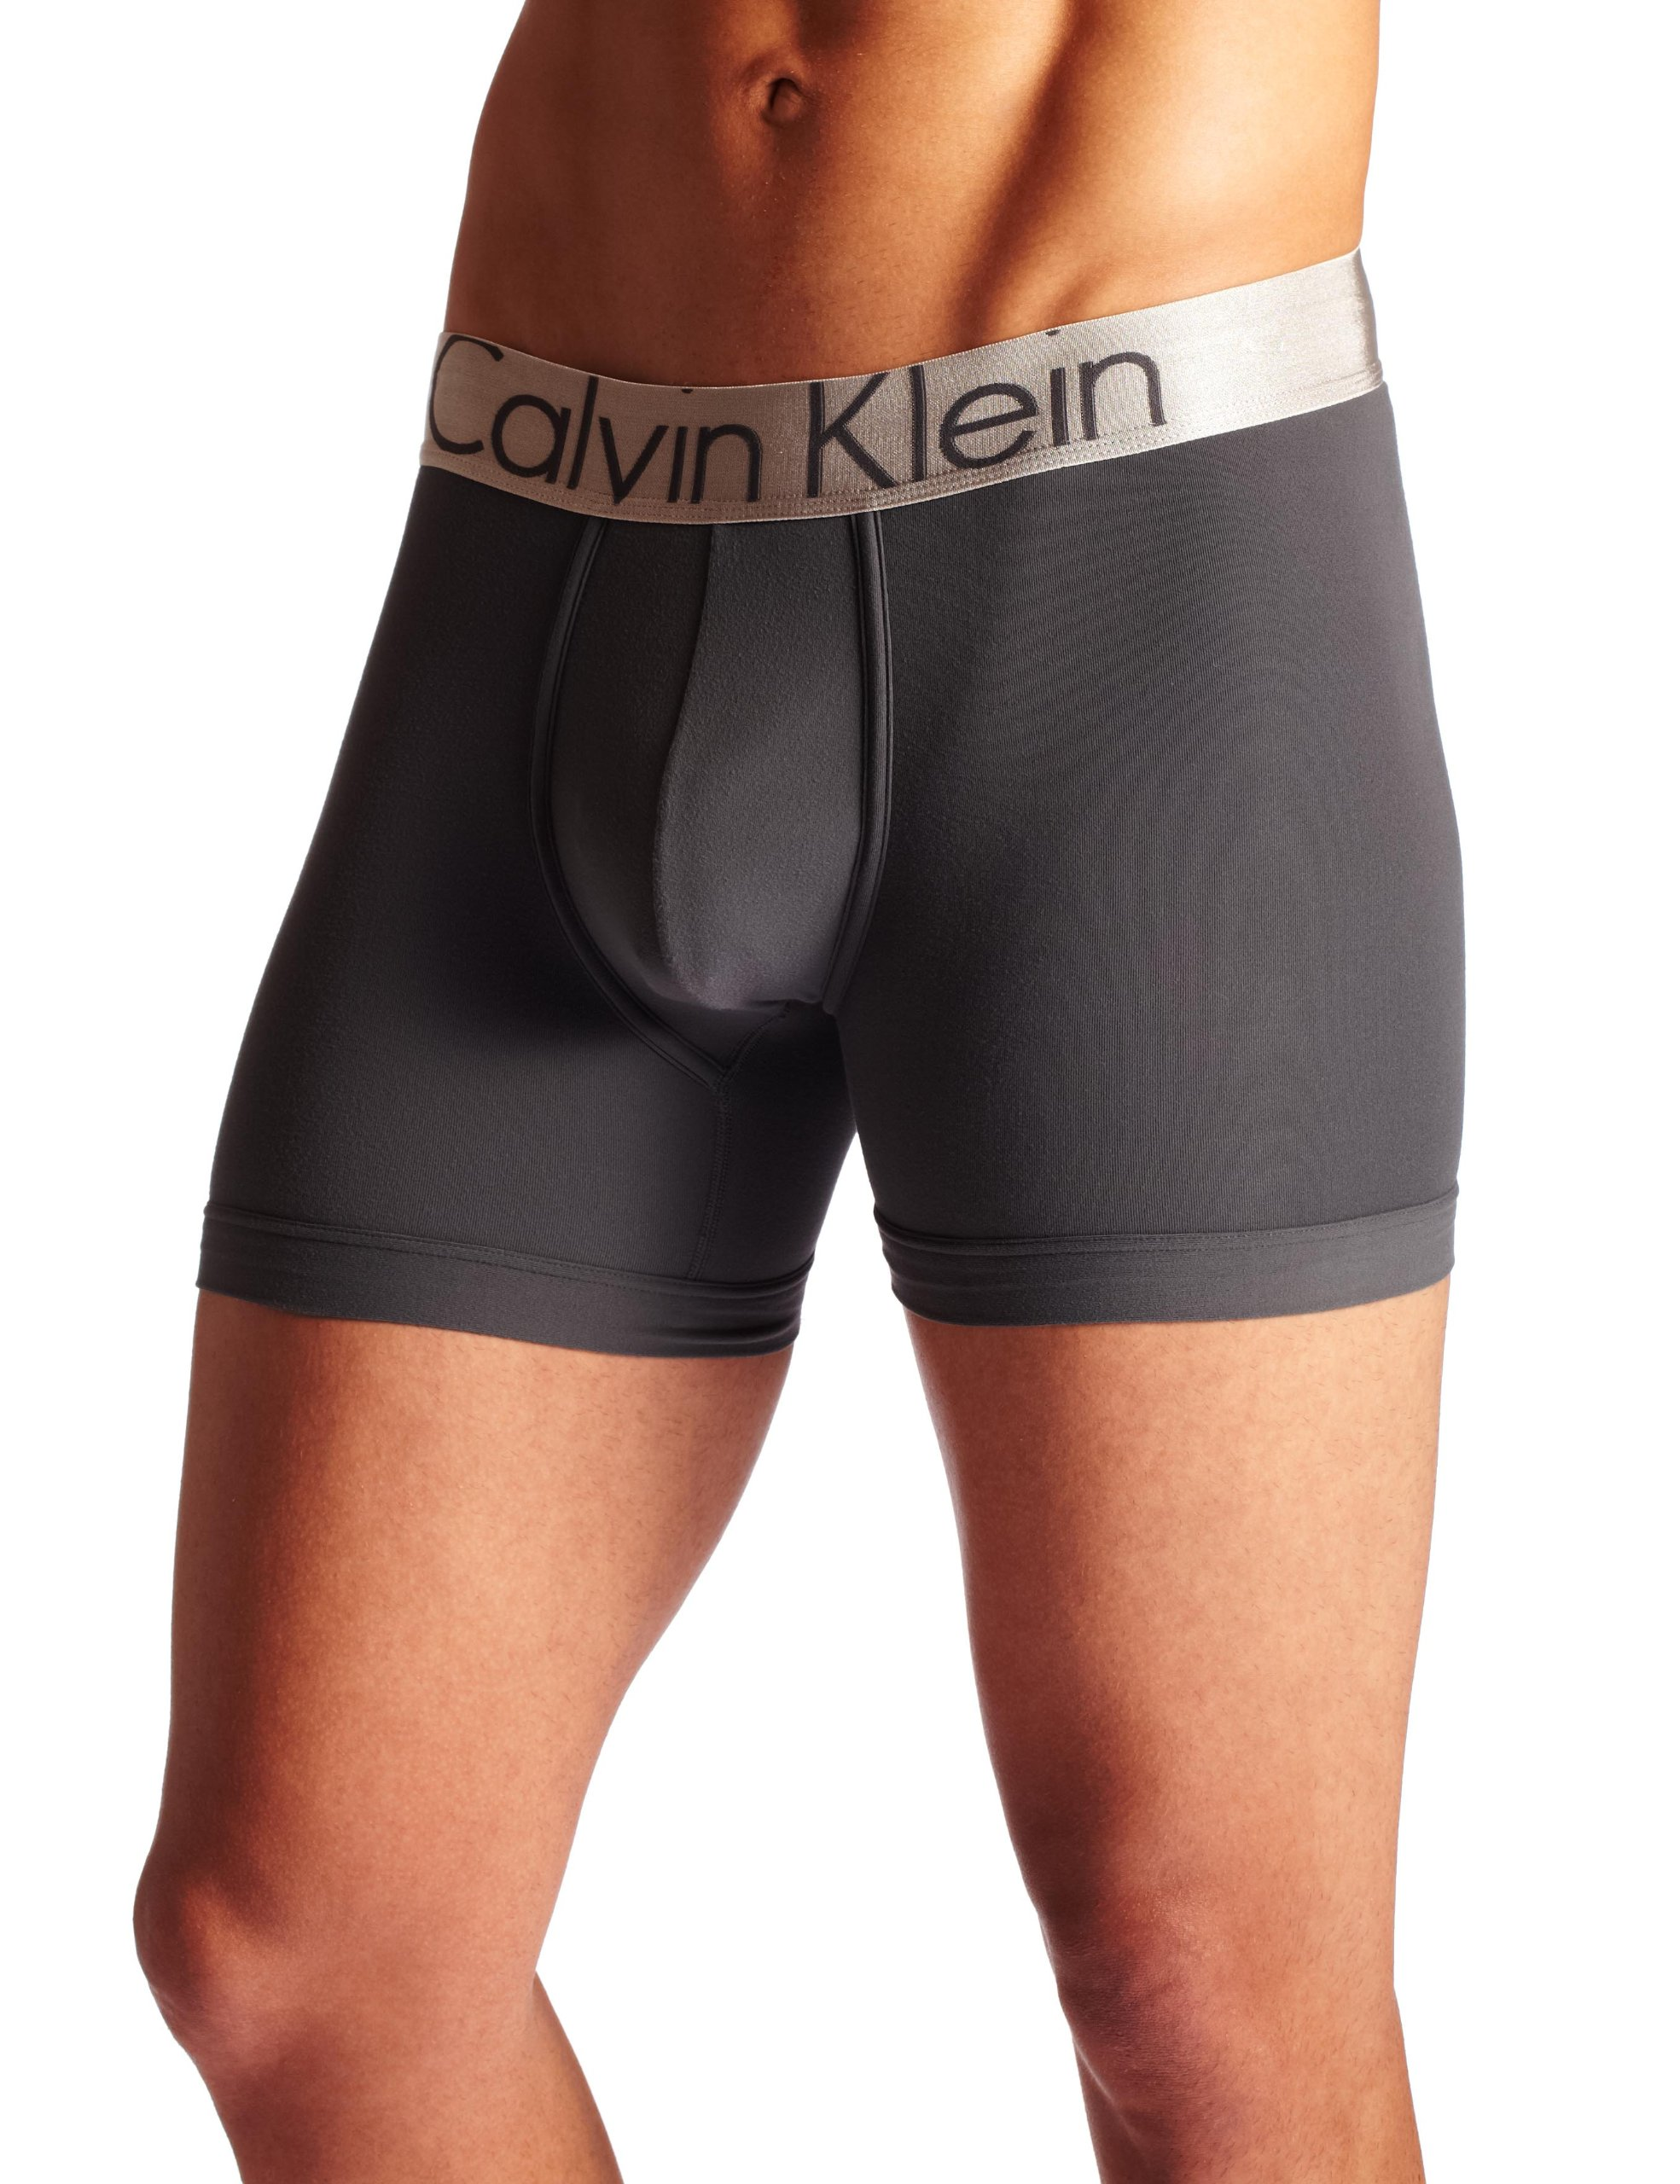 calvin klein men 39 s underwear steel micro boxer briefs amazon. Black Bedroom Furniture Sets. Home Design Ideas